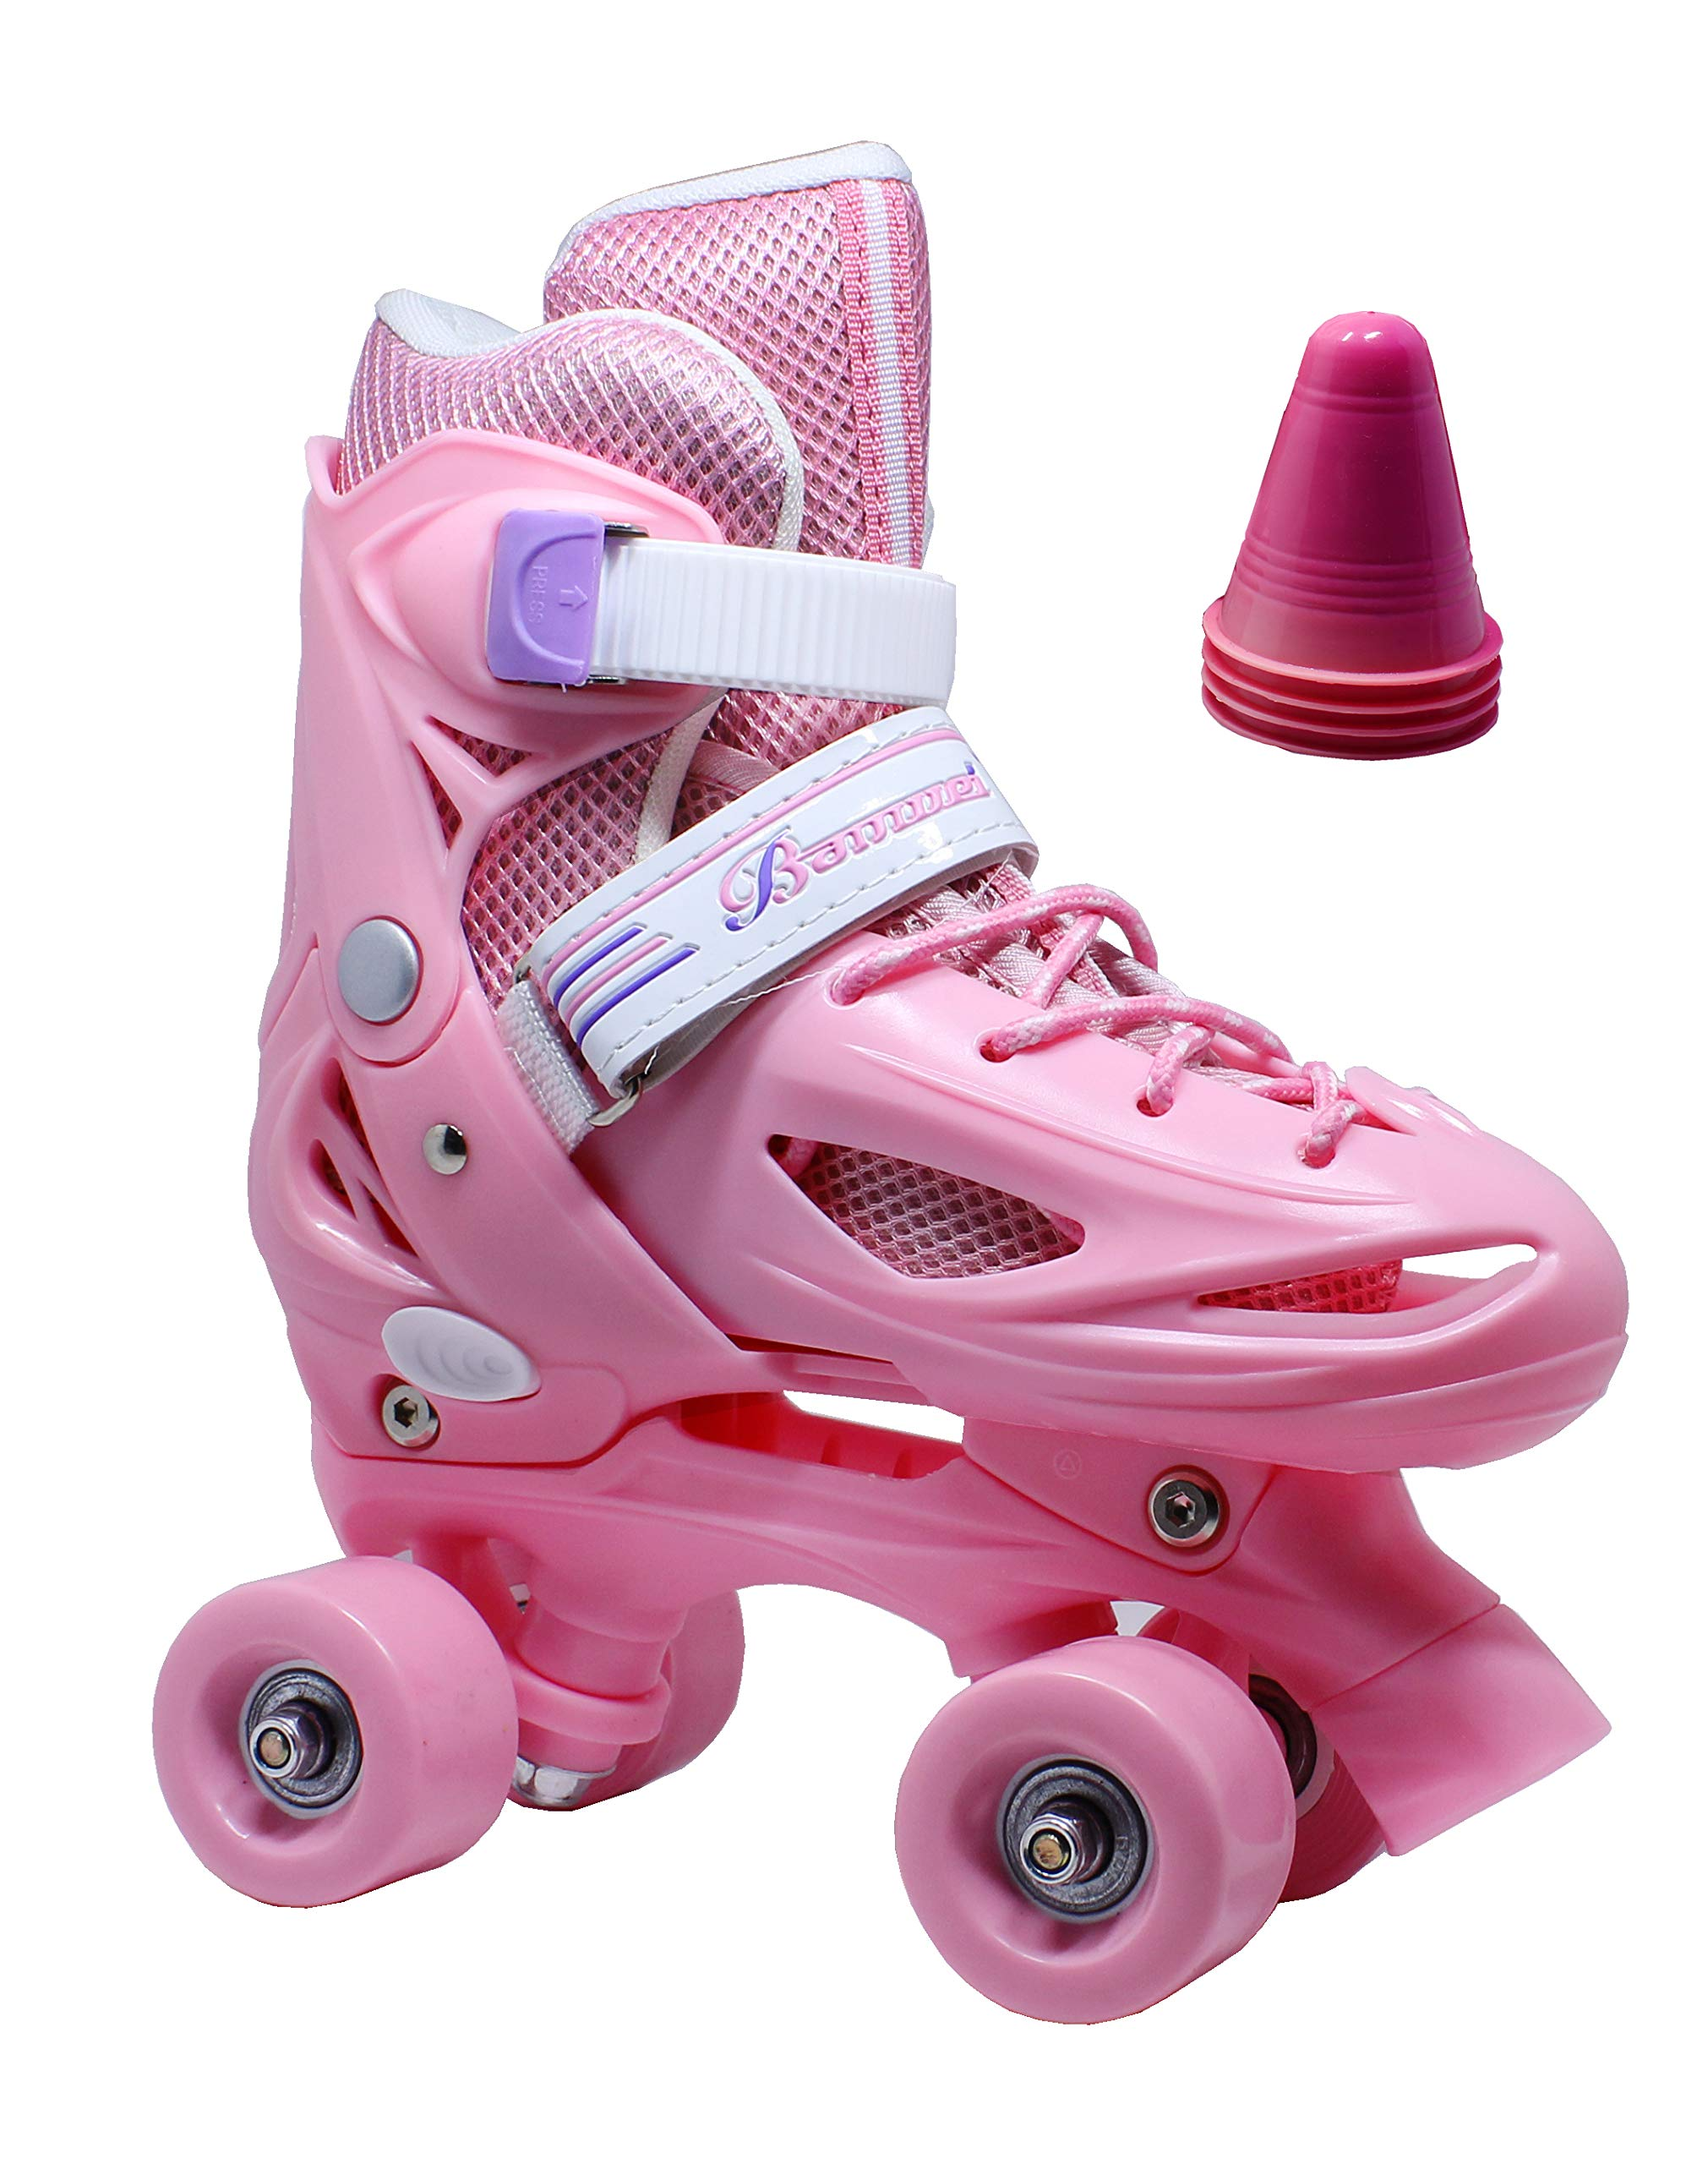 WiiSHAM Fun Roll Adjustable Roller Skates with Four Piles (Flesh Pink, Small)